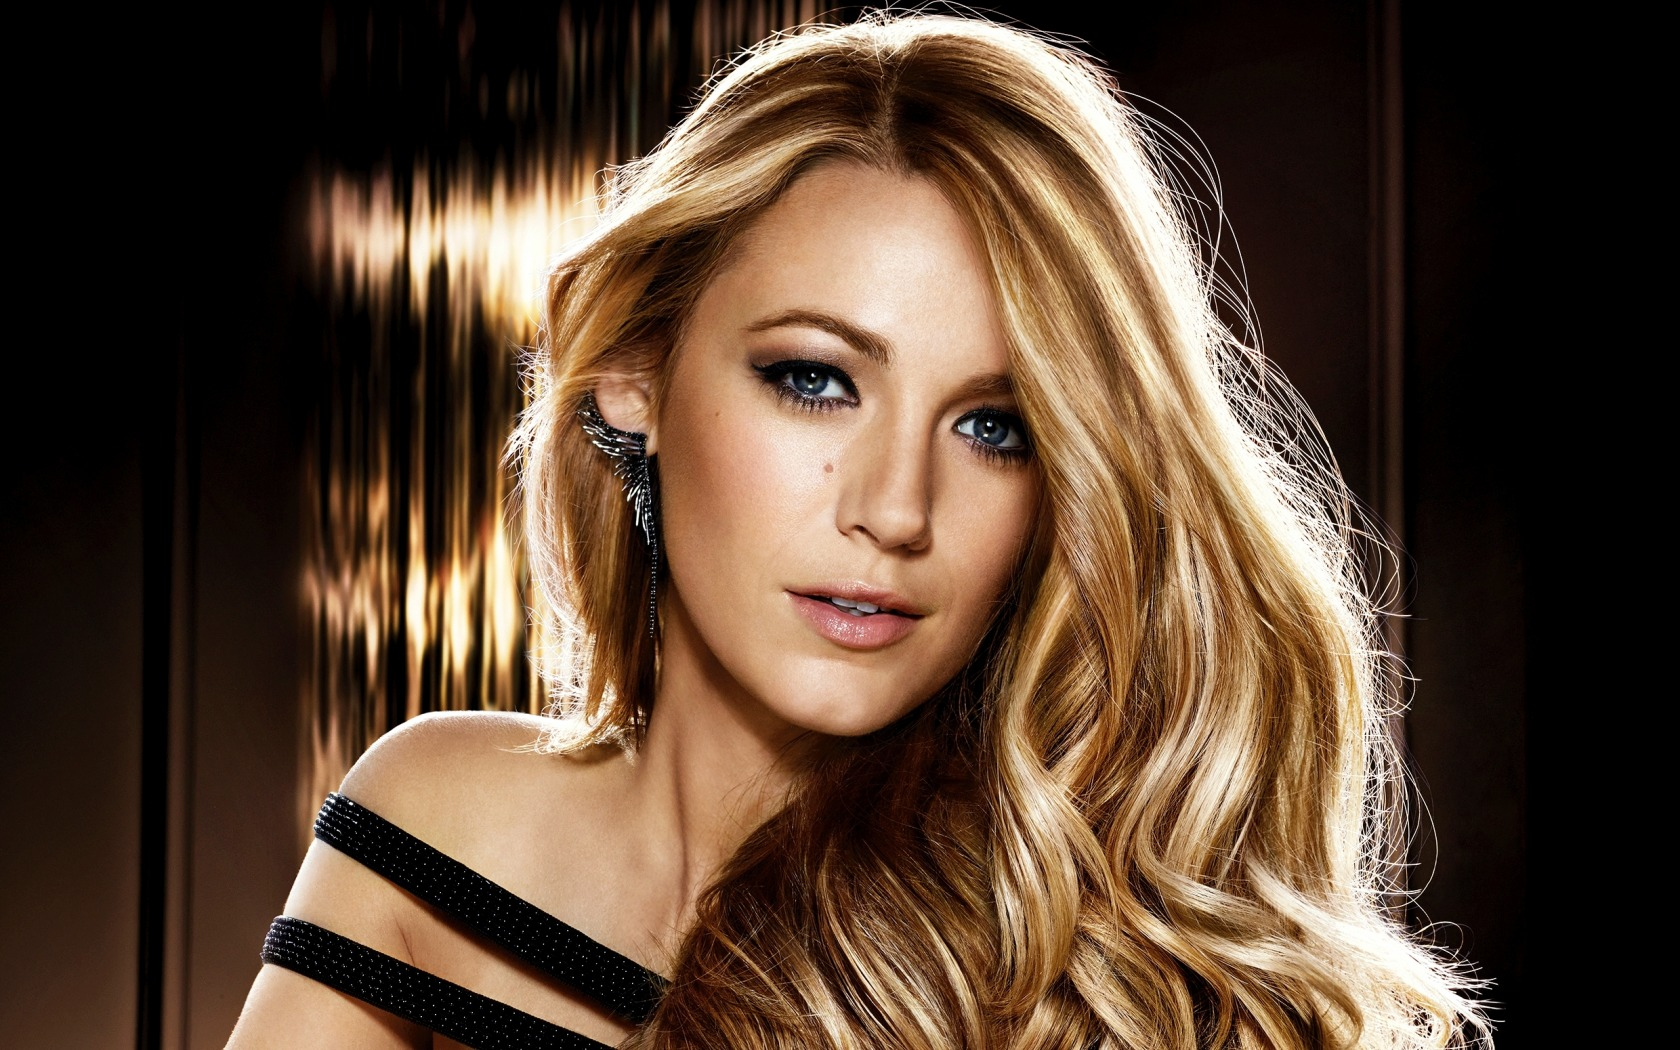 Cute Blake Lively Beautiful Smile Mobile Hd Download Free Photos